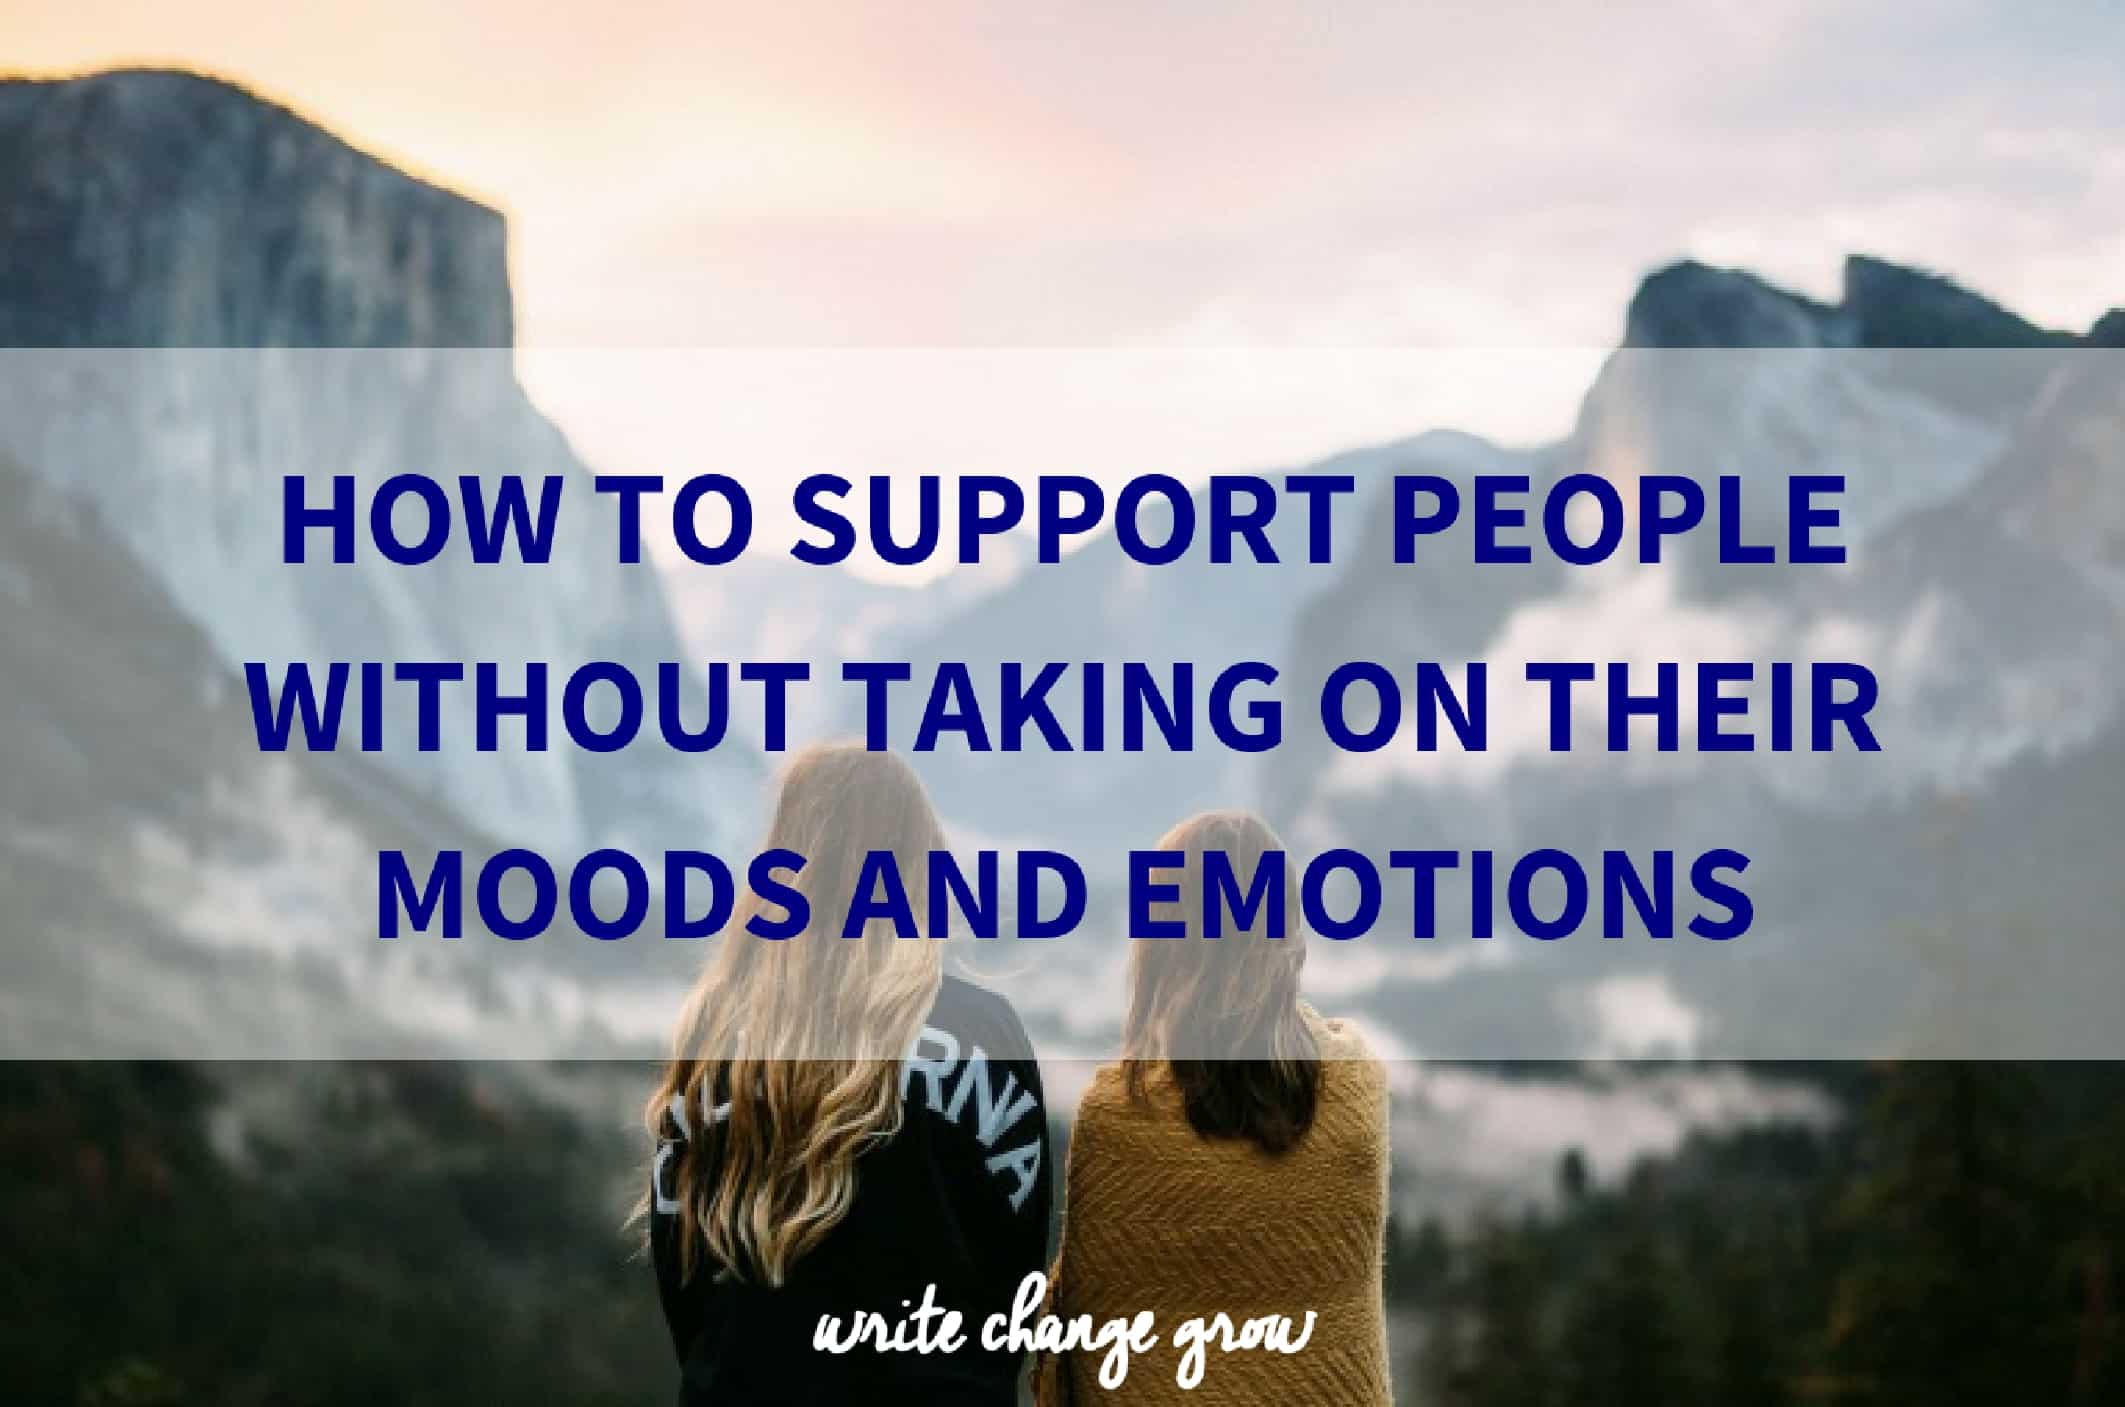 How to Support People Without Taking on Their Moods and Emotions